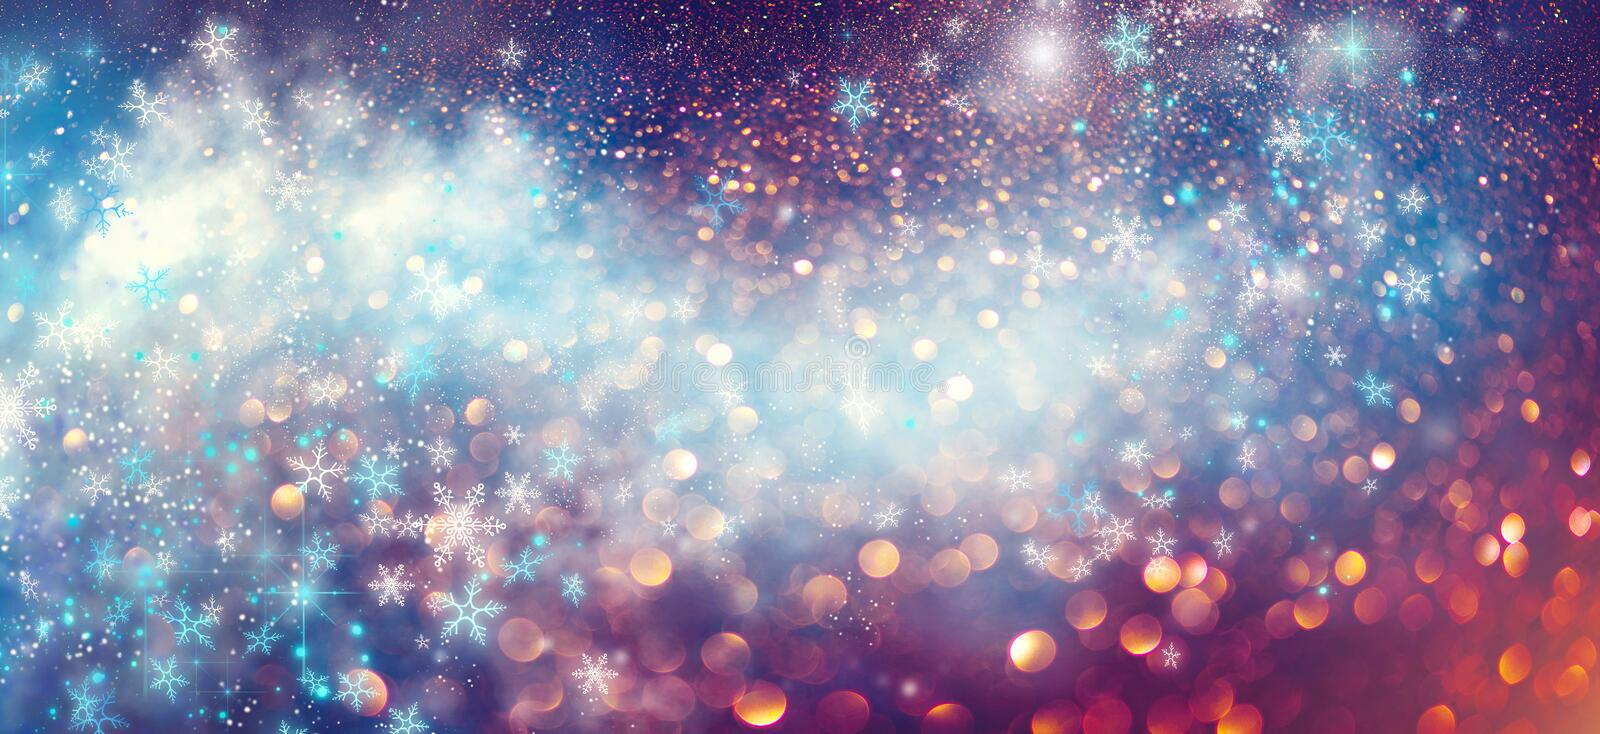 Christmas and New Year glittering winter snow flakes swirl bokeh background, backdrop with sparkling blue stars, holiday garland. Magic glowing stars, lights vector illustration